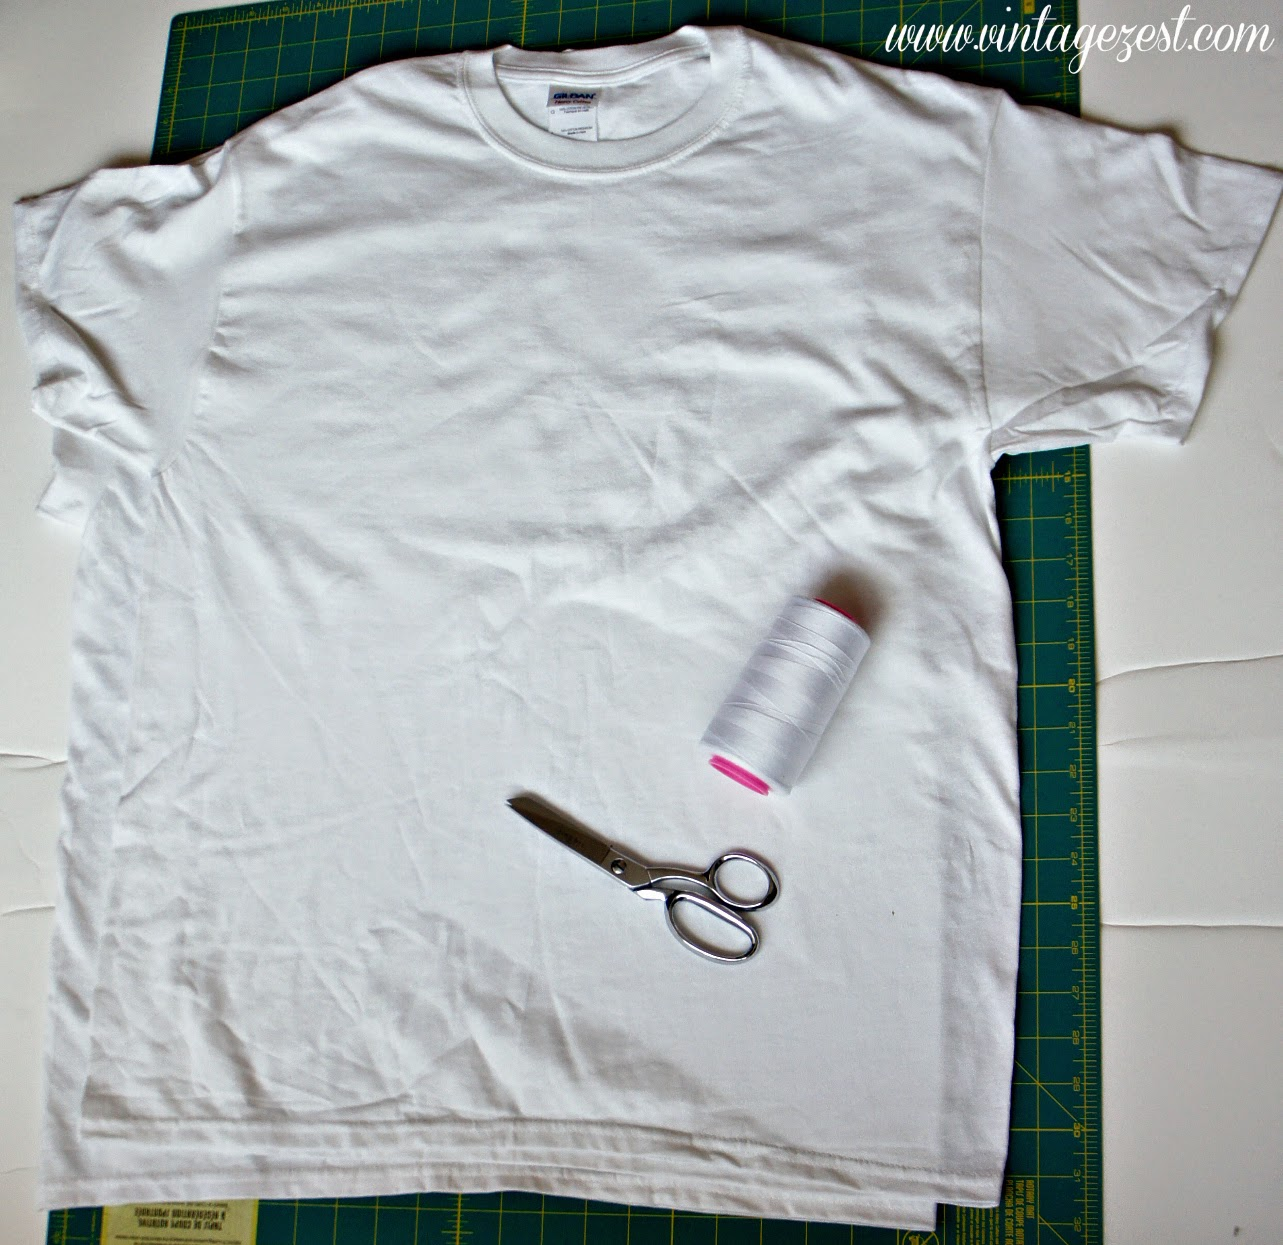 How to: DIY a Dress Upcycled from Oversized T-shirts on Diane's Vintage Zest!  #sewing #tutorial